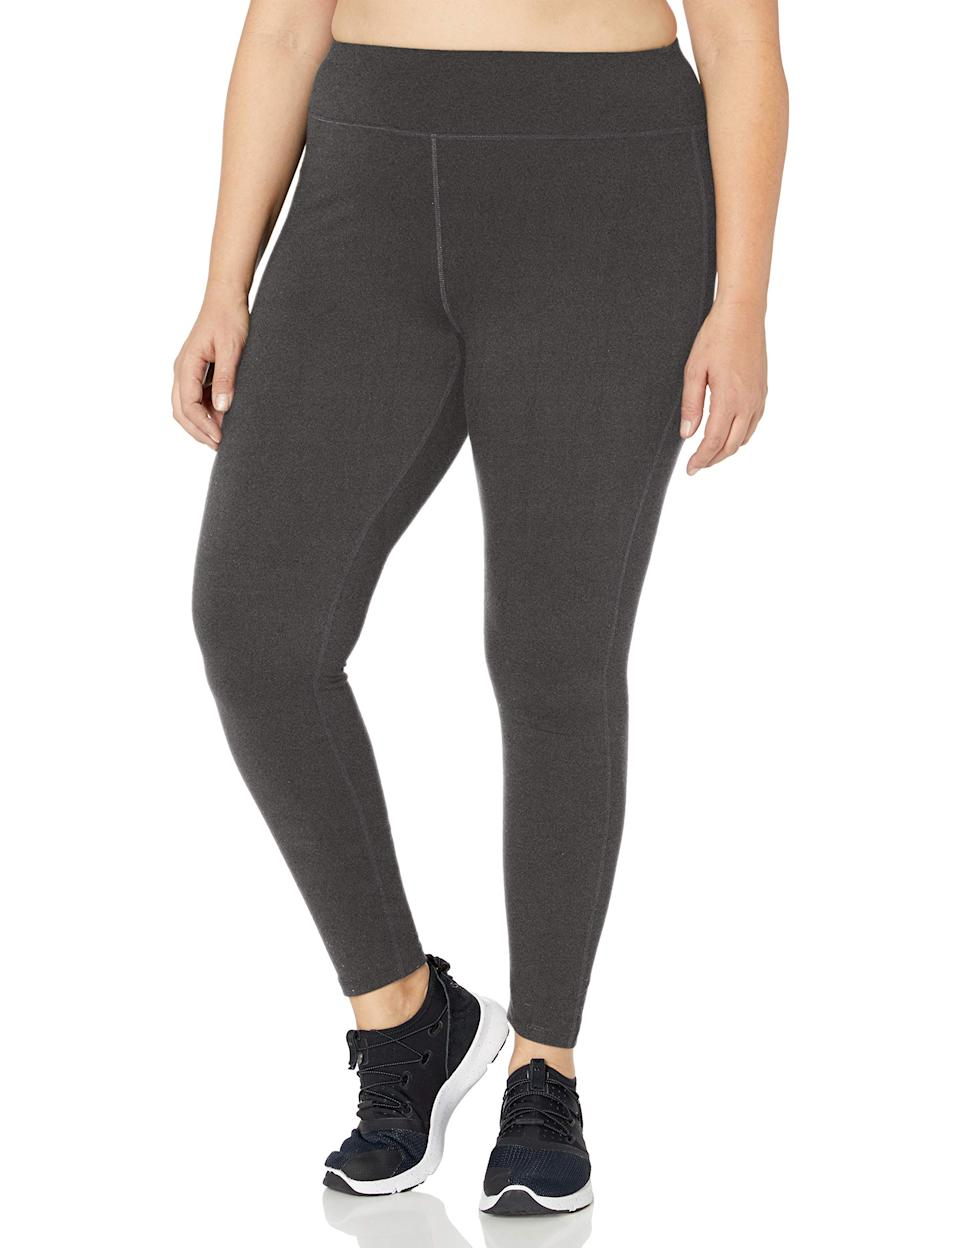 "<h3><a href=""https://amzn.to/2RqGBK3"" rel=""nofollow noopener"" target=""_blank"" data-ylk=""slk:Just My Size Plus Active Legging"" class=""link rapid-noclick-resp"">Just My Size Plus Active Legging</a></h3><br>While the form-fitting silhouette will give you aerodynamic movement, a sewn-in gusset allows for ultimate ease in movement. Plus, a smooth elastic inside means these fit the bill for a quality soft legging style. <br><br><br><br><br><strong>Just My Size</strong> Plus Size Active Run Legging, $, available at <a href=""https://amzn.to/2UYVpC5"" rel=""nofollow noopener"" target=""_blank"" data-ylk=""slk:Amazon"" class=""link rapid-noclick-resp"">Amazon</a>"